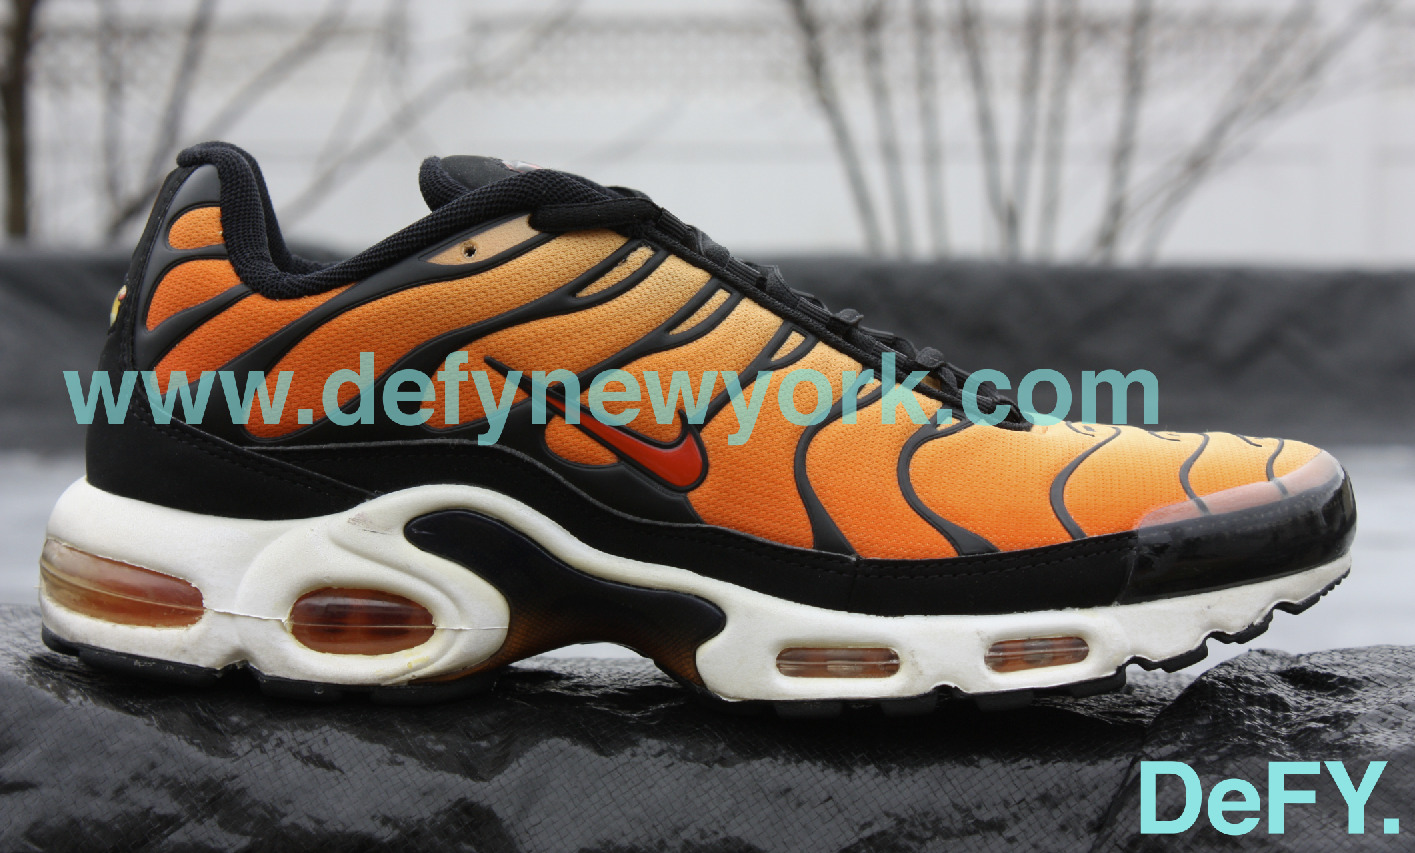 The Retro King Of The Air Max Plus Jungle The Nike Air